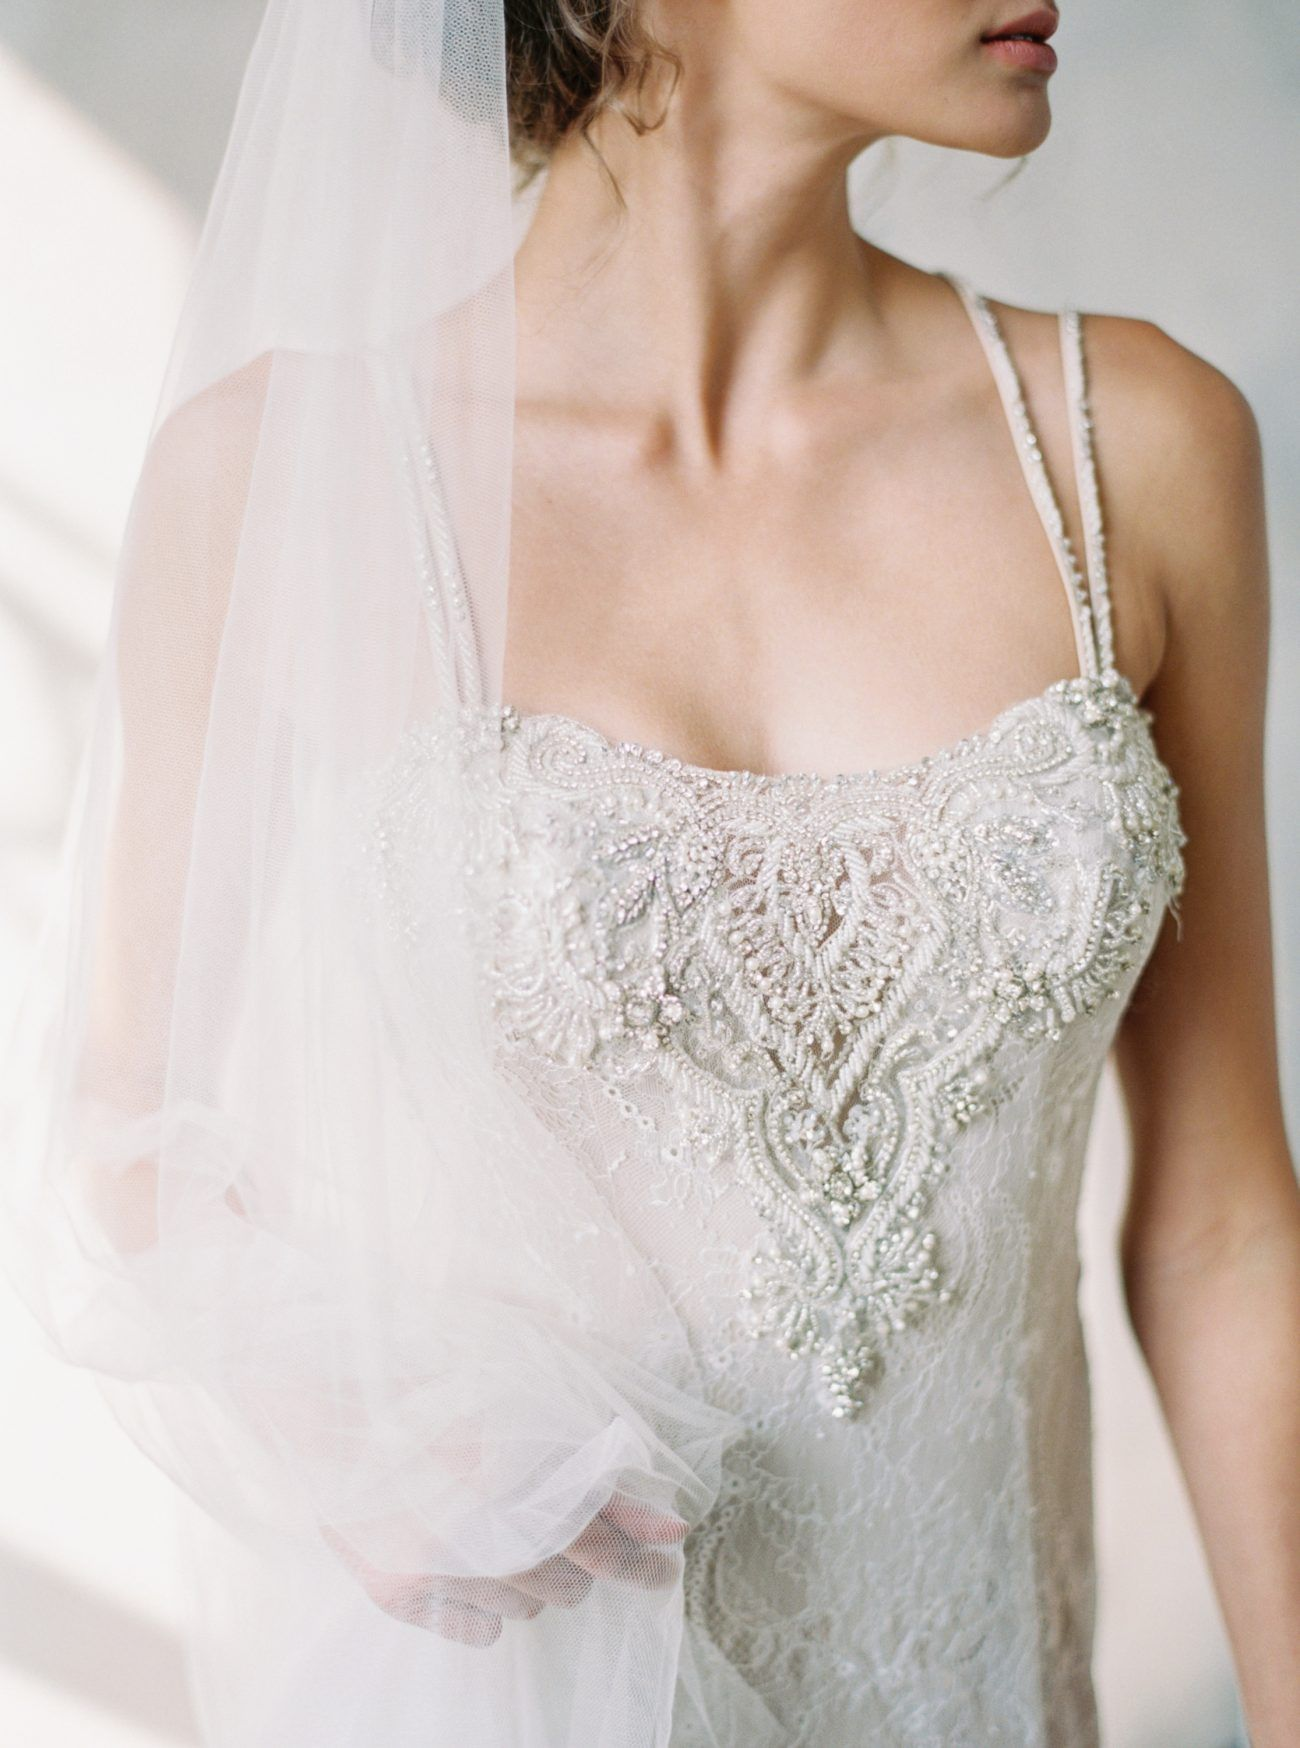 LisaCatherinePhotography_Bridal_01310